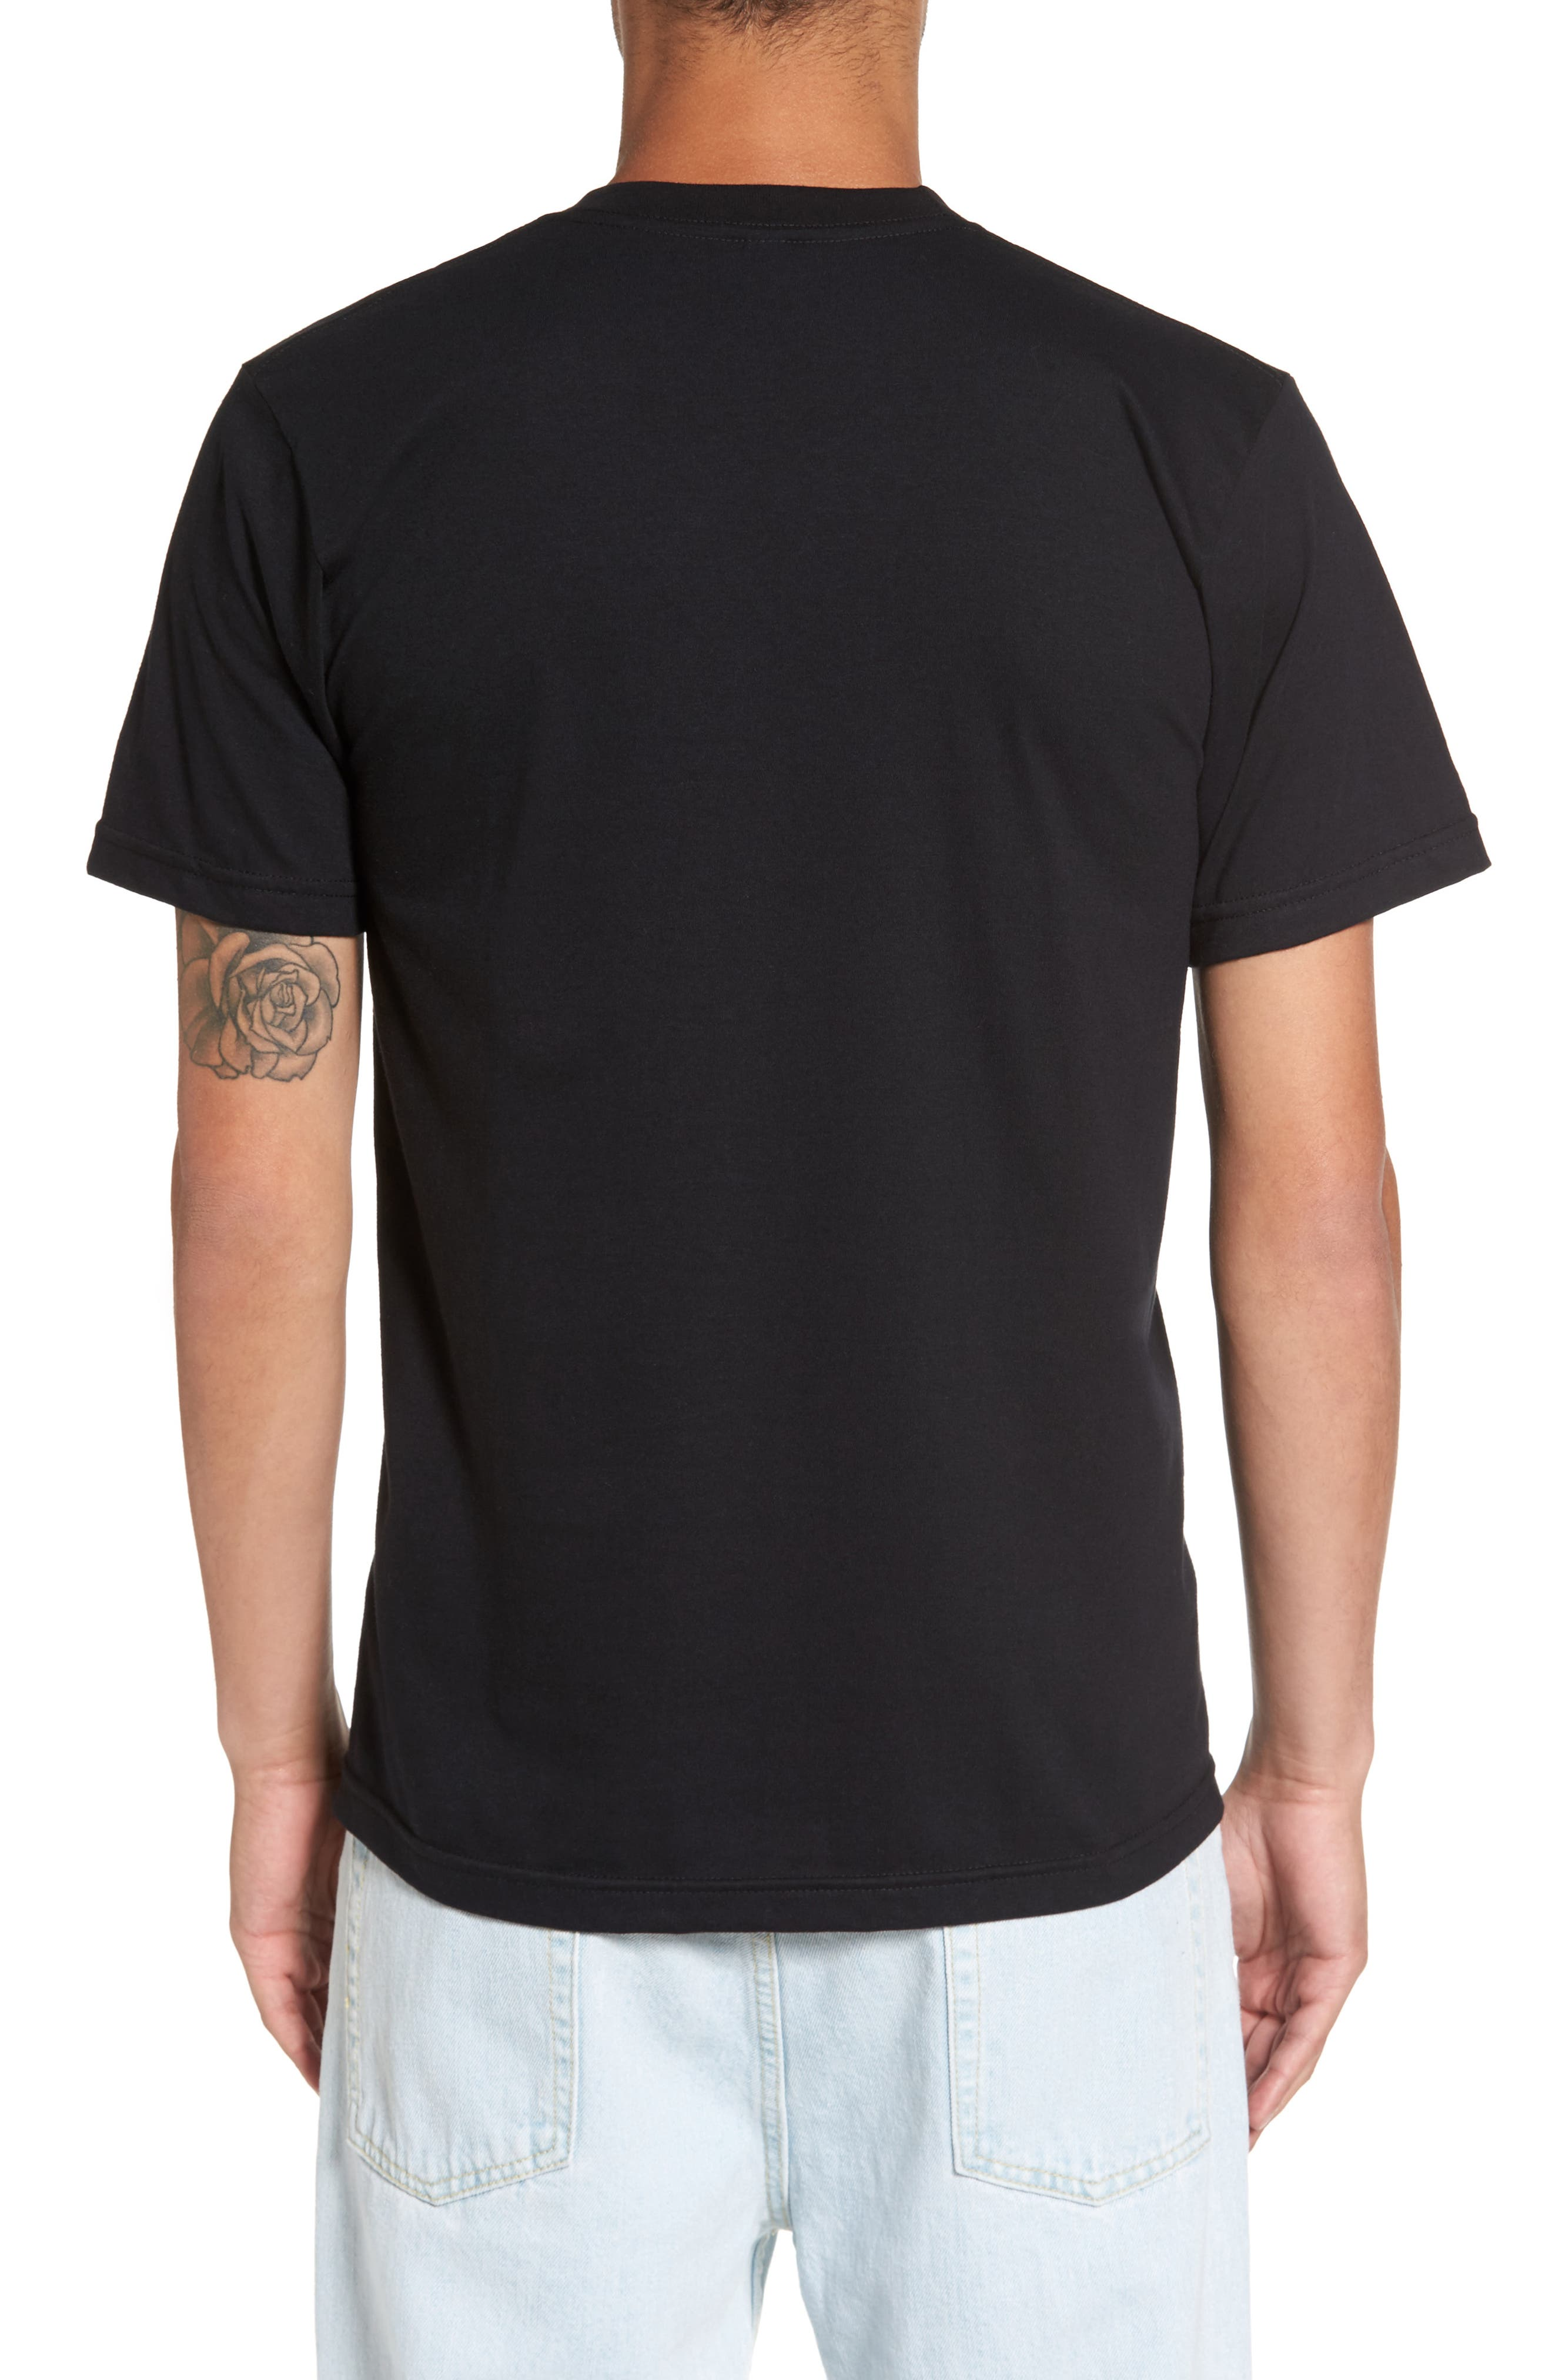 Johnny Tree Clouds T-Shirt,                             Alternate thumbnail 2, color,                             Black